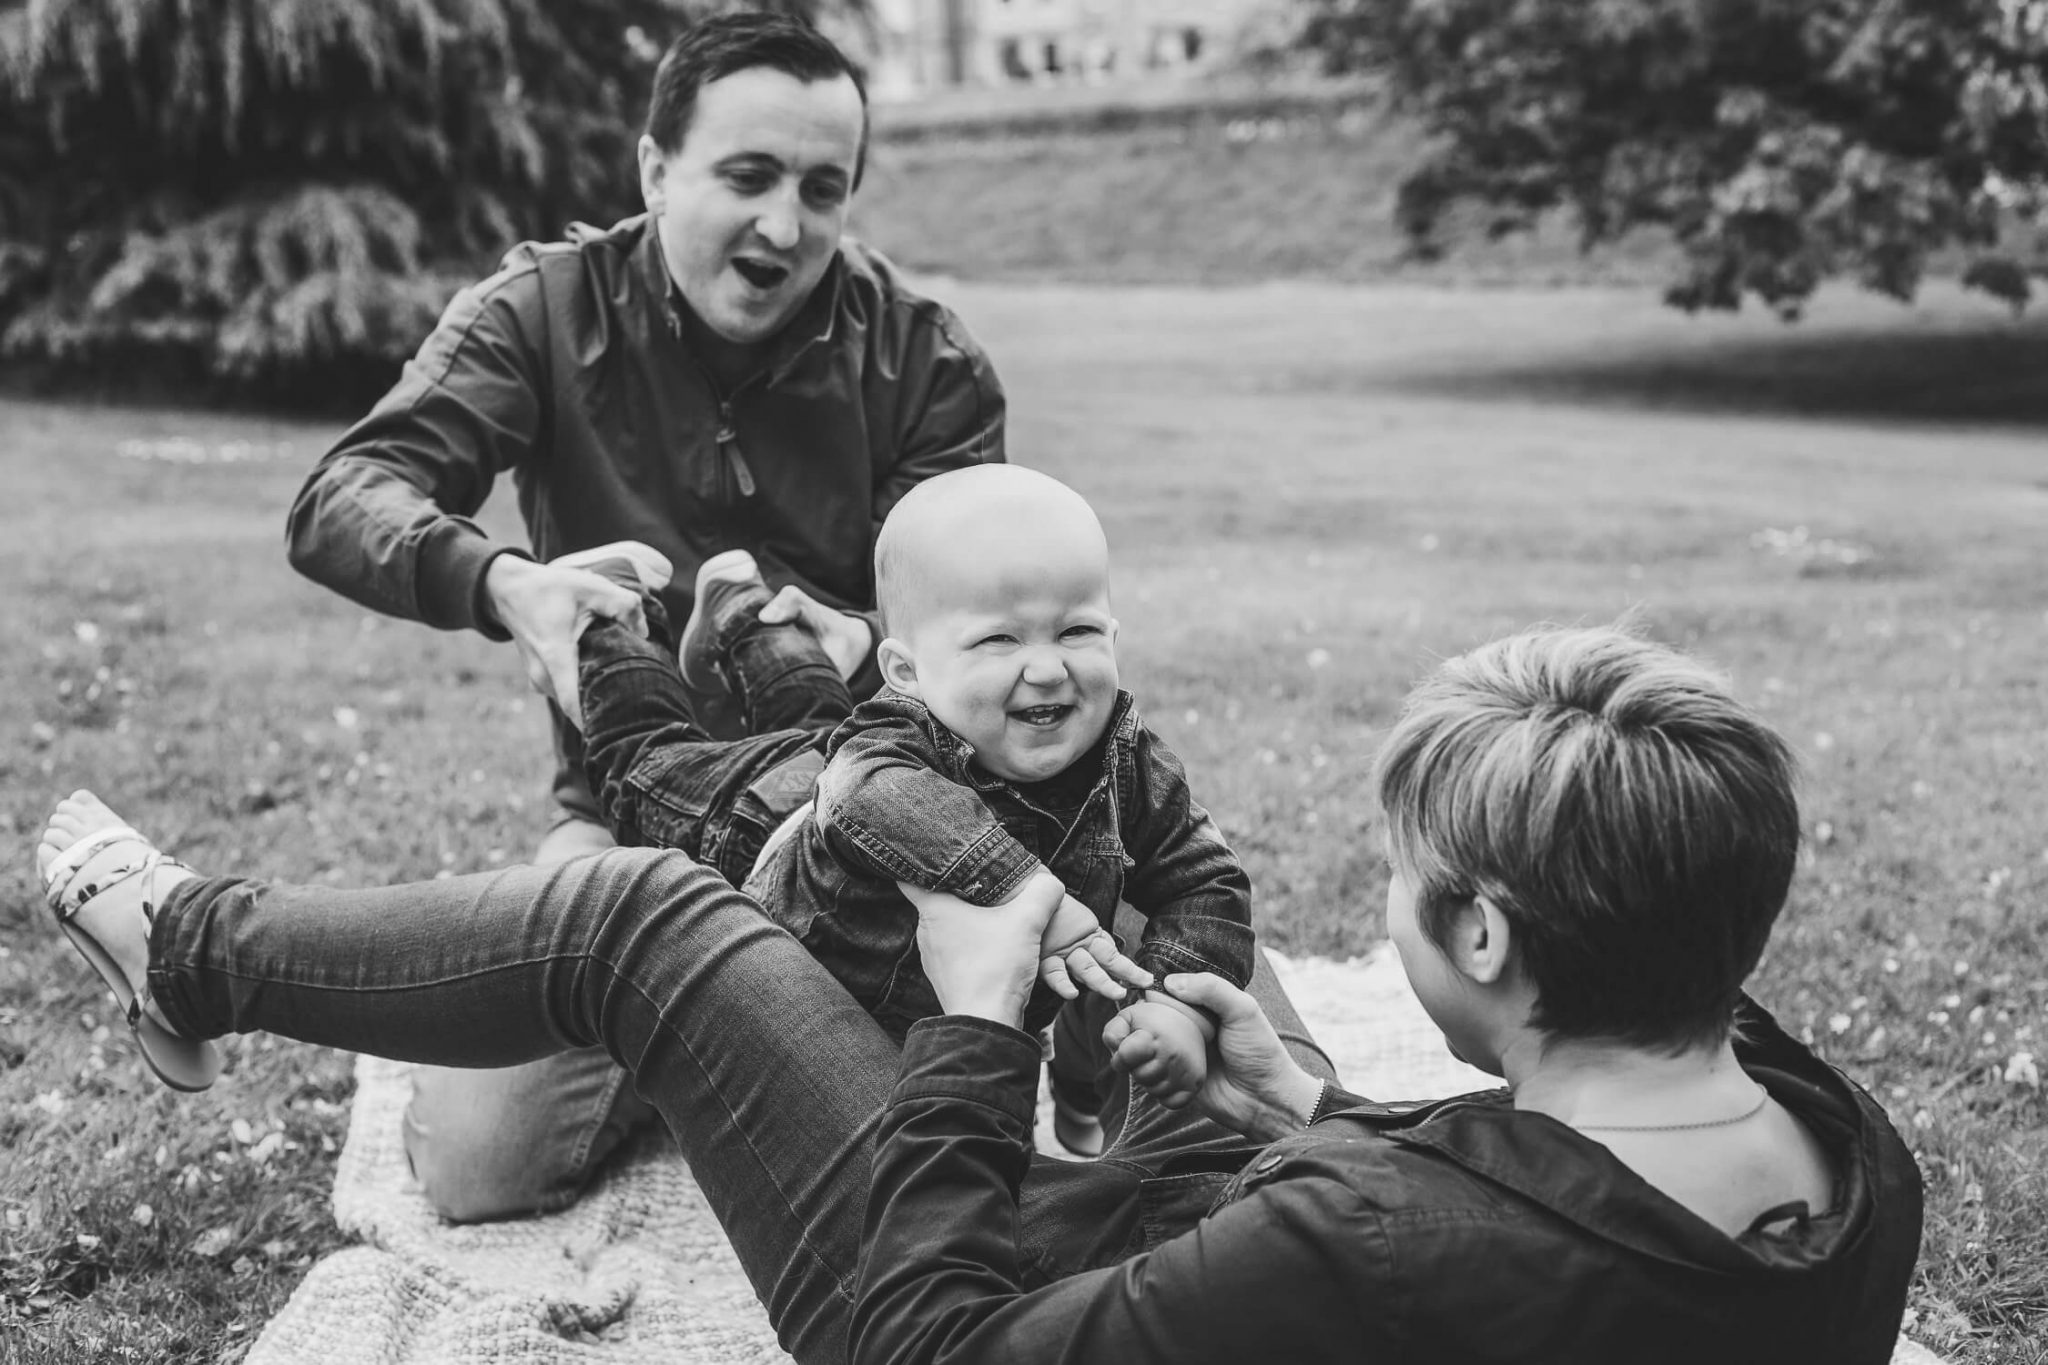 family photoshoot in aberdeen park mum dad toddler playing around black and white